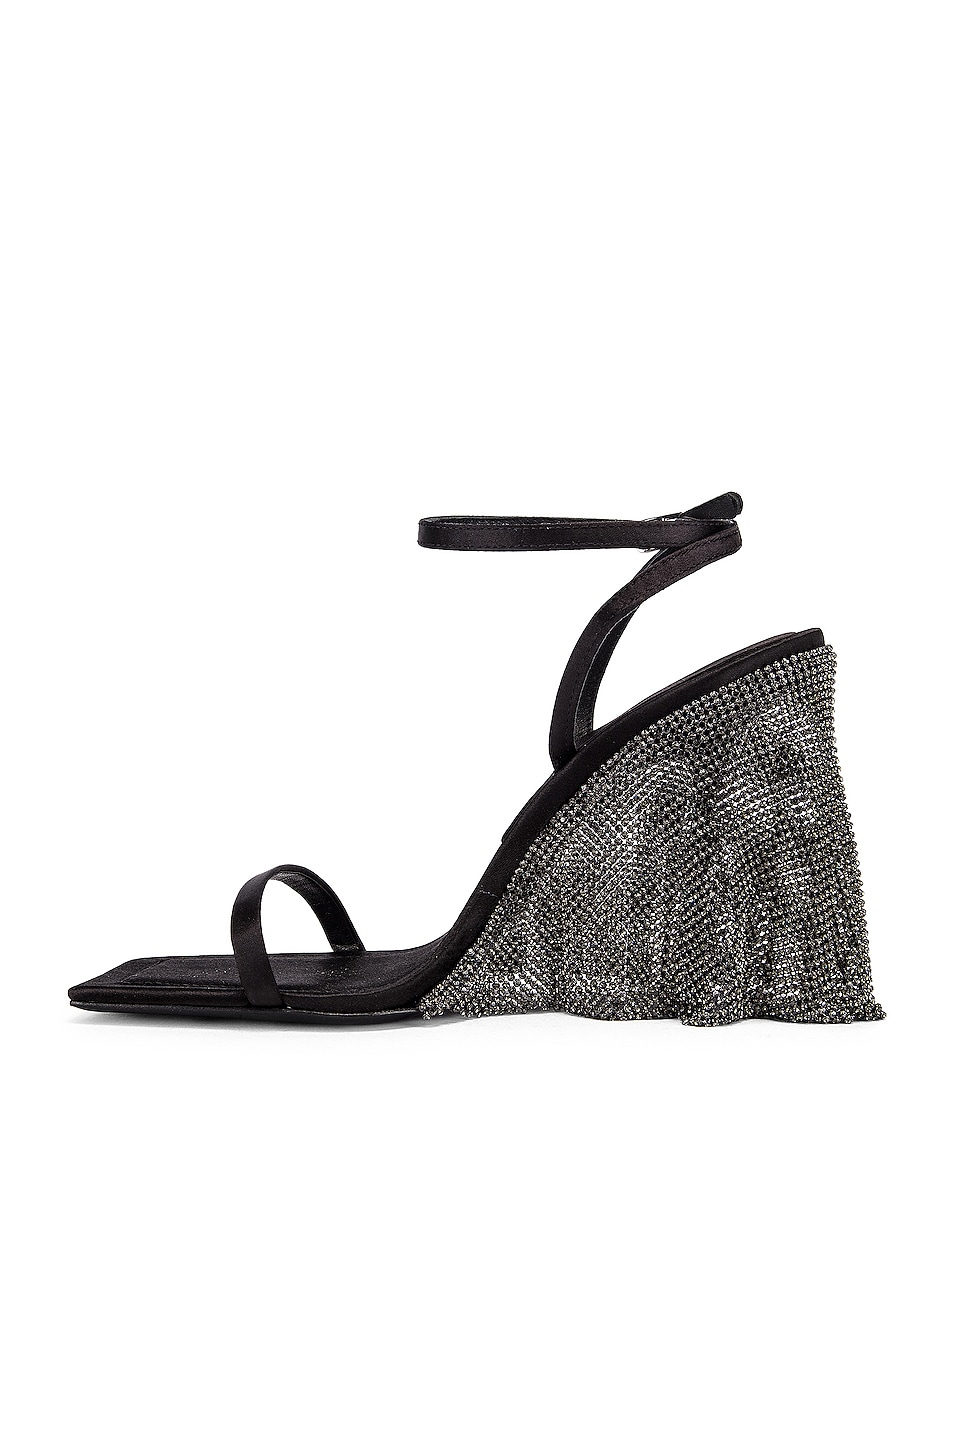 Image 5 of Alexander Wang Blake Sandal in Black